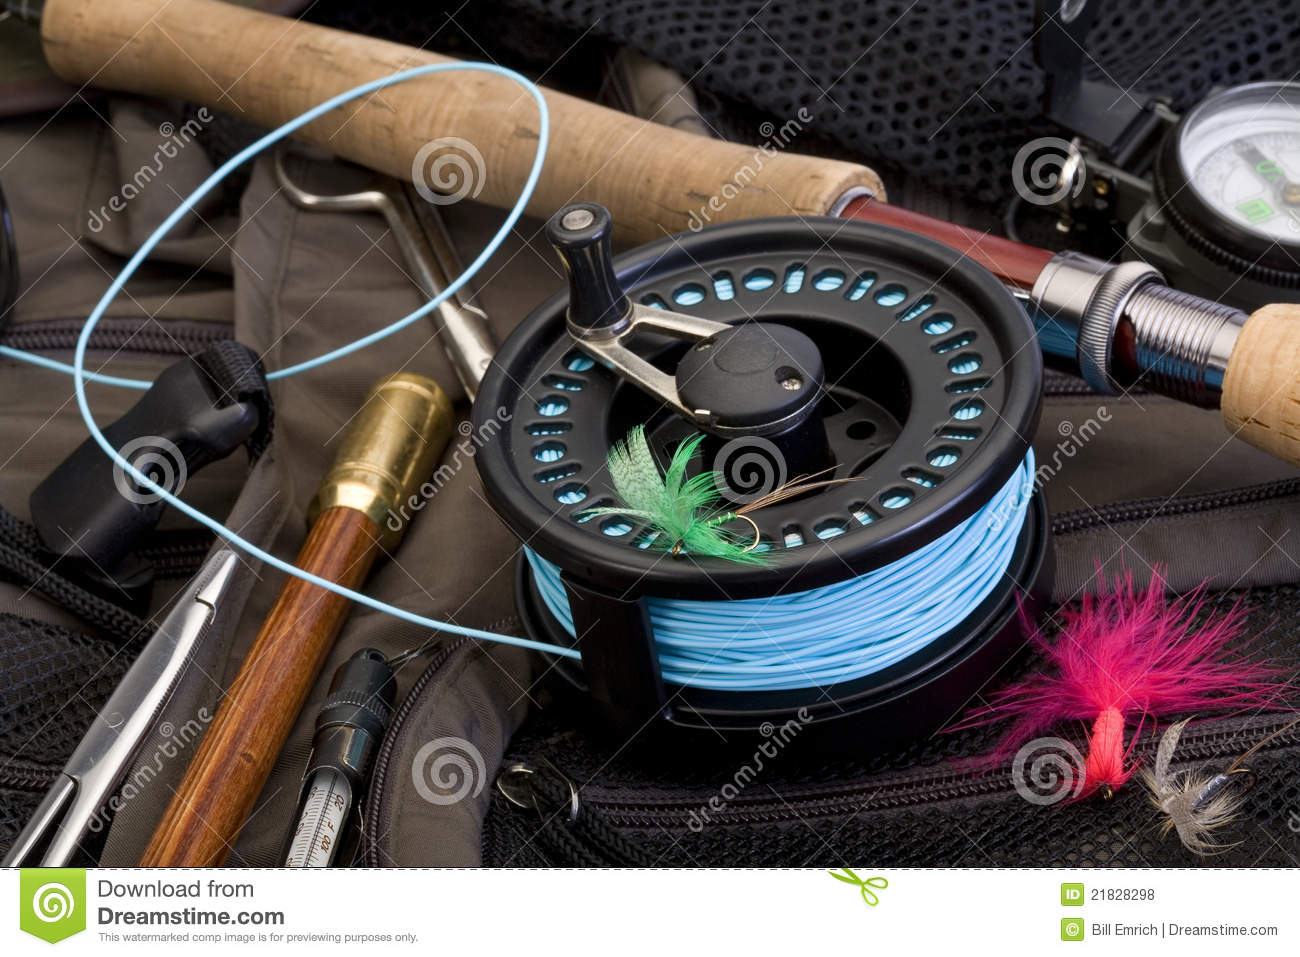 Fly fishing gear royalty free stock photos image 21828298 for How to get free fishing gear